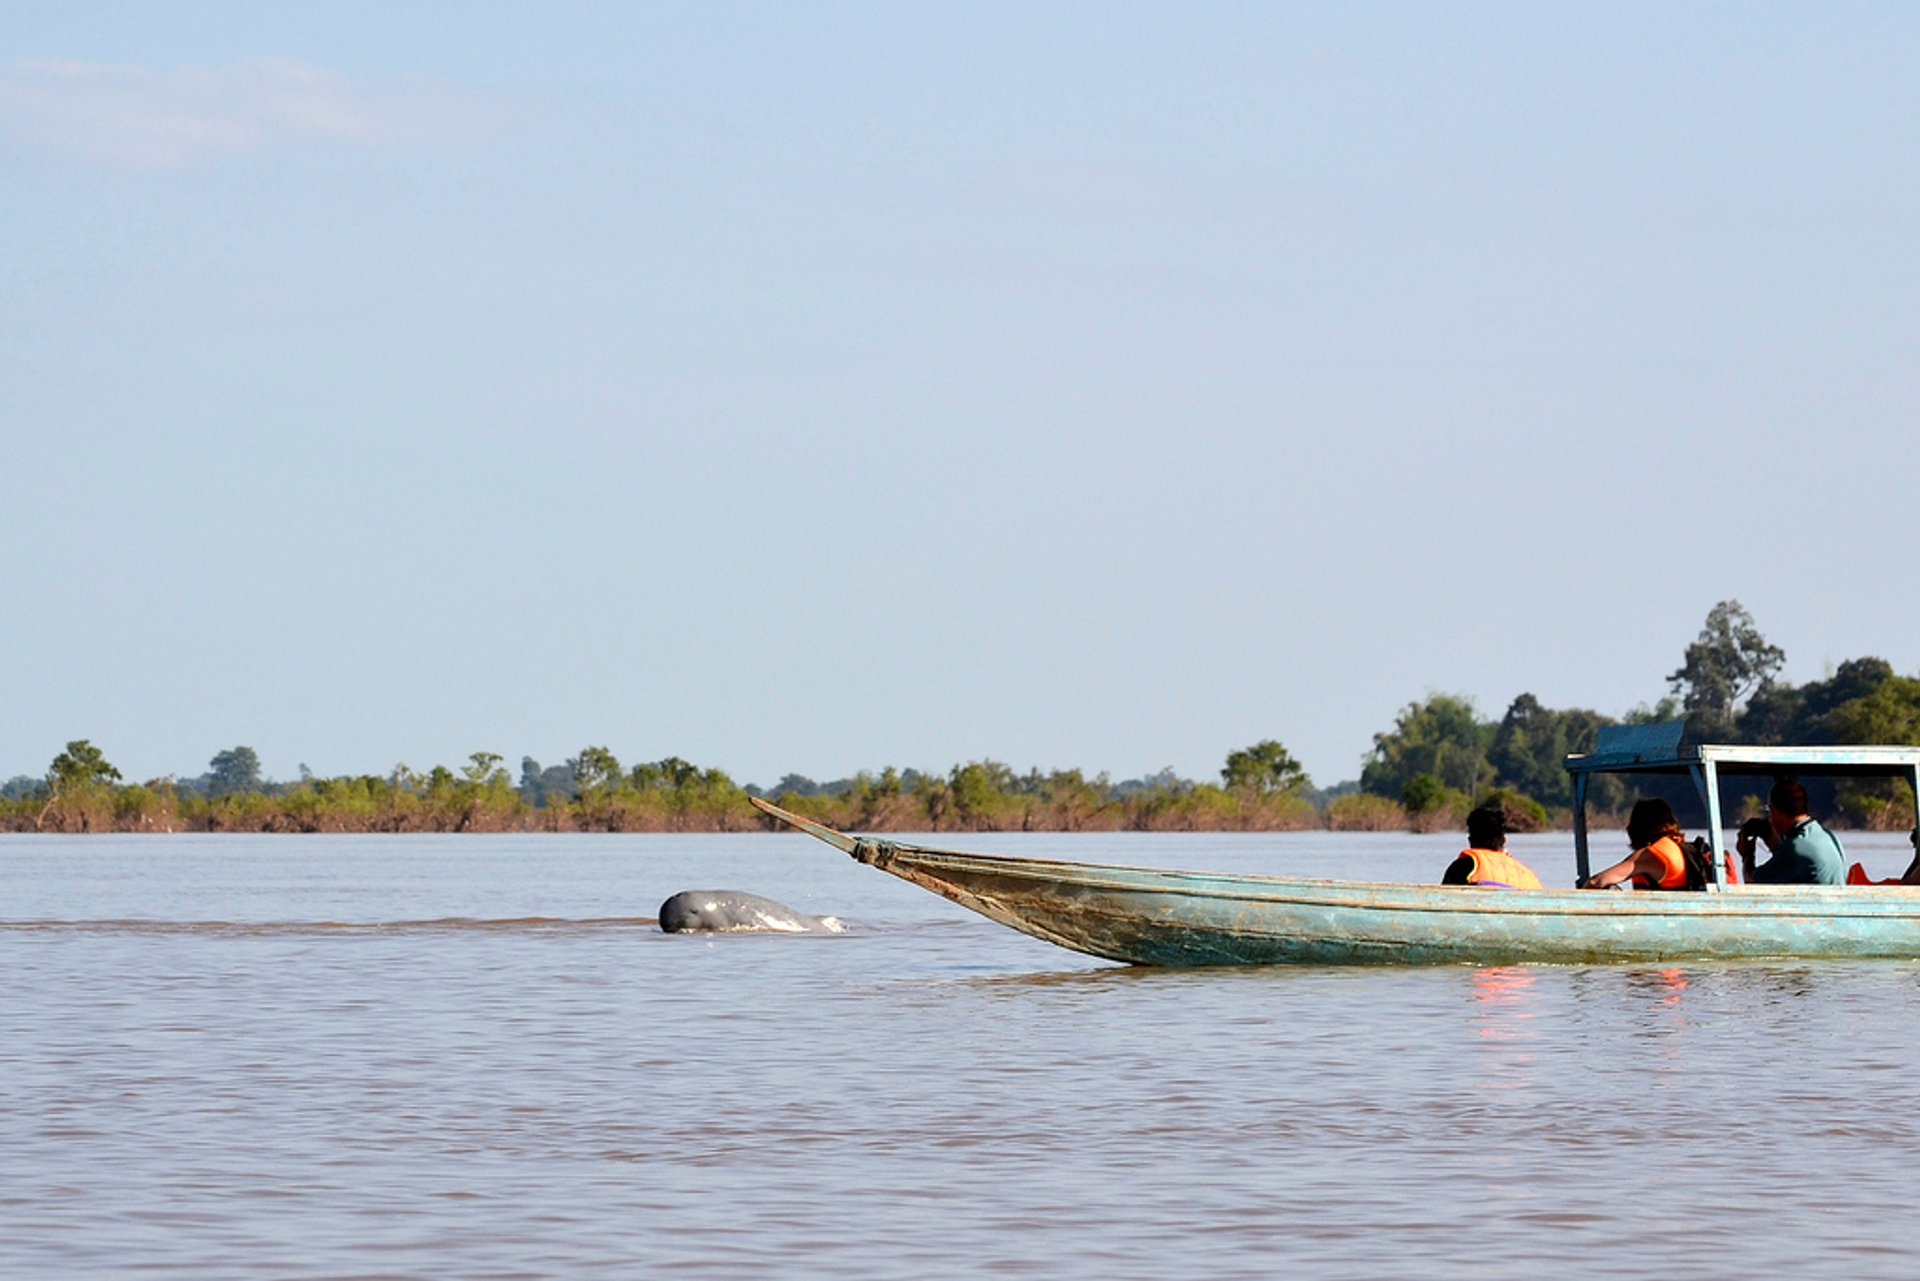 Mekong River Dolphin in Cambodia 2020 - Best Time